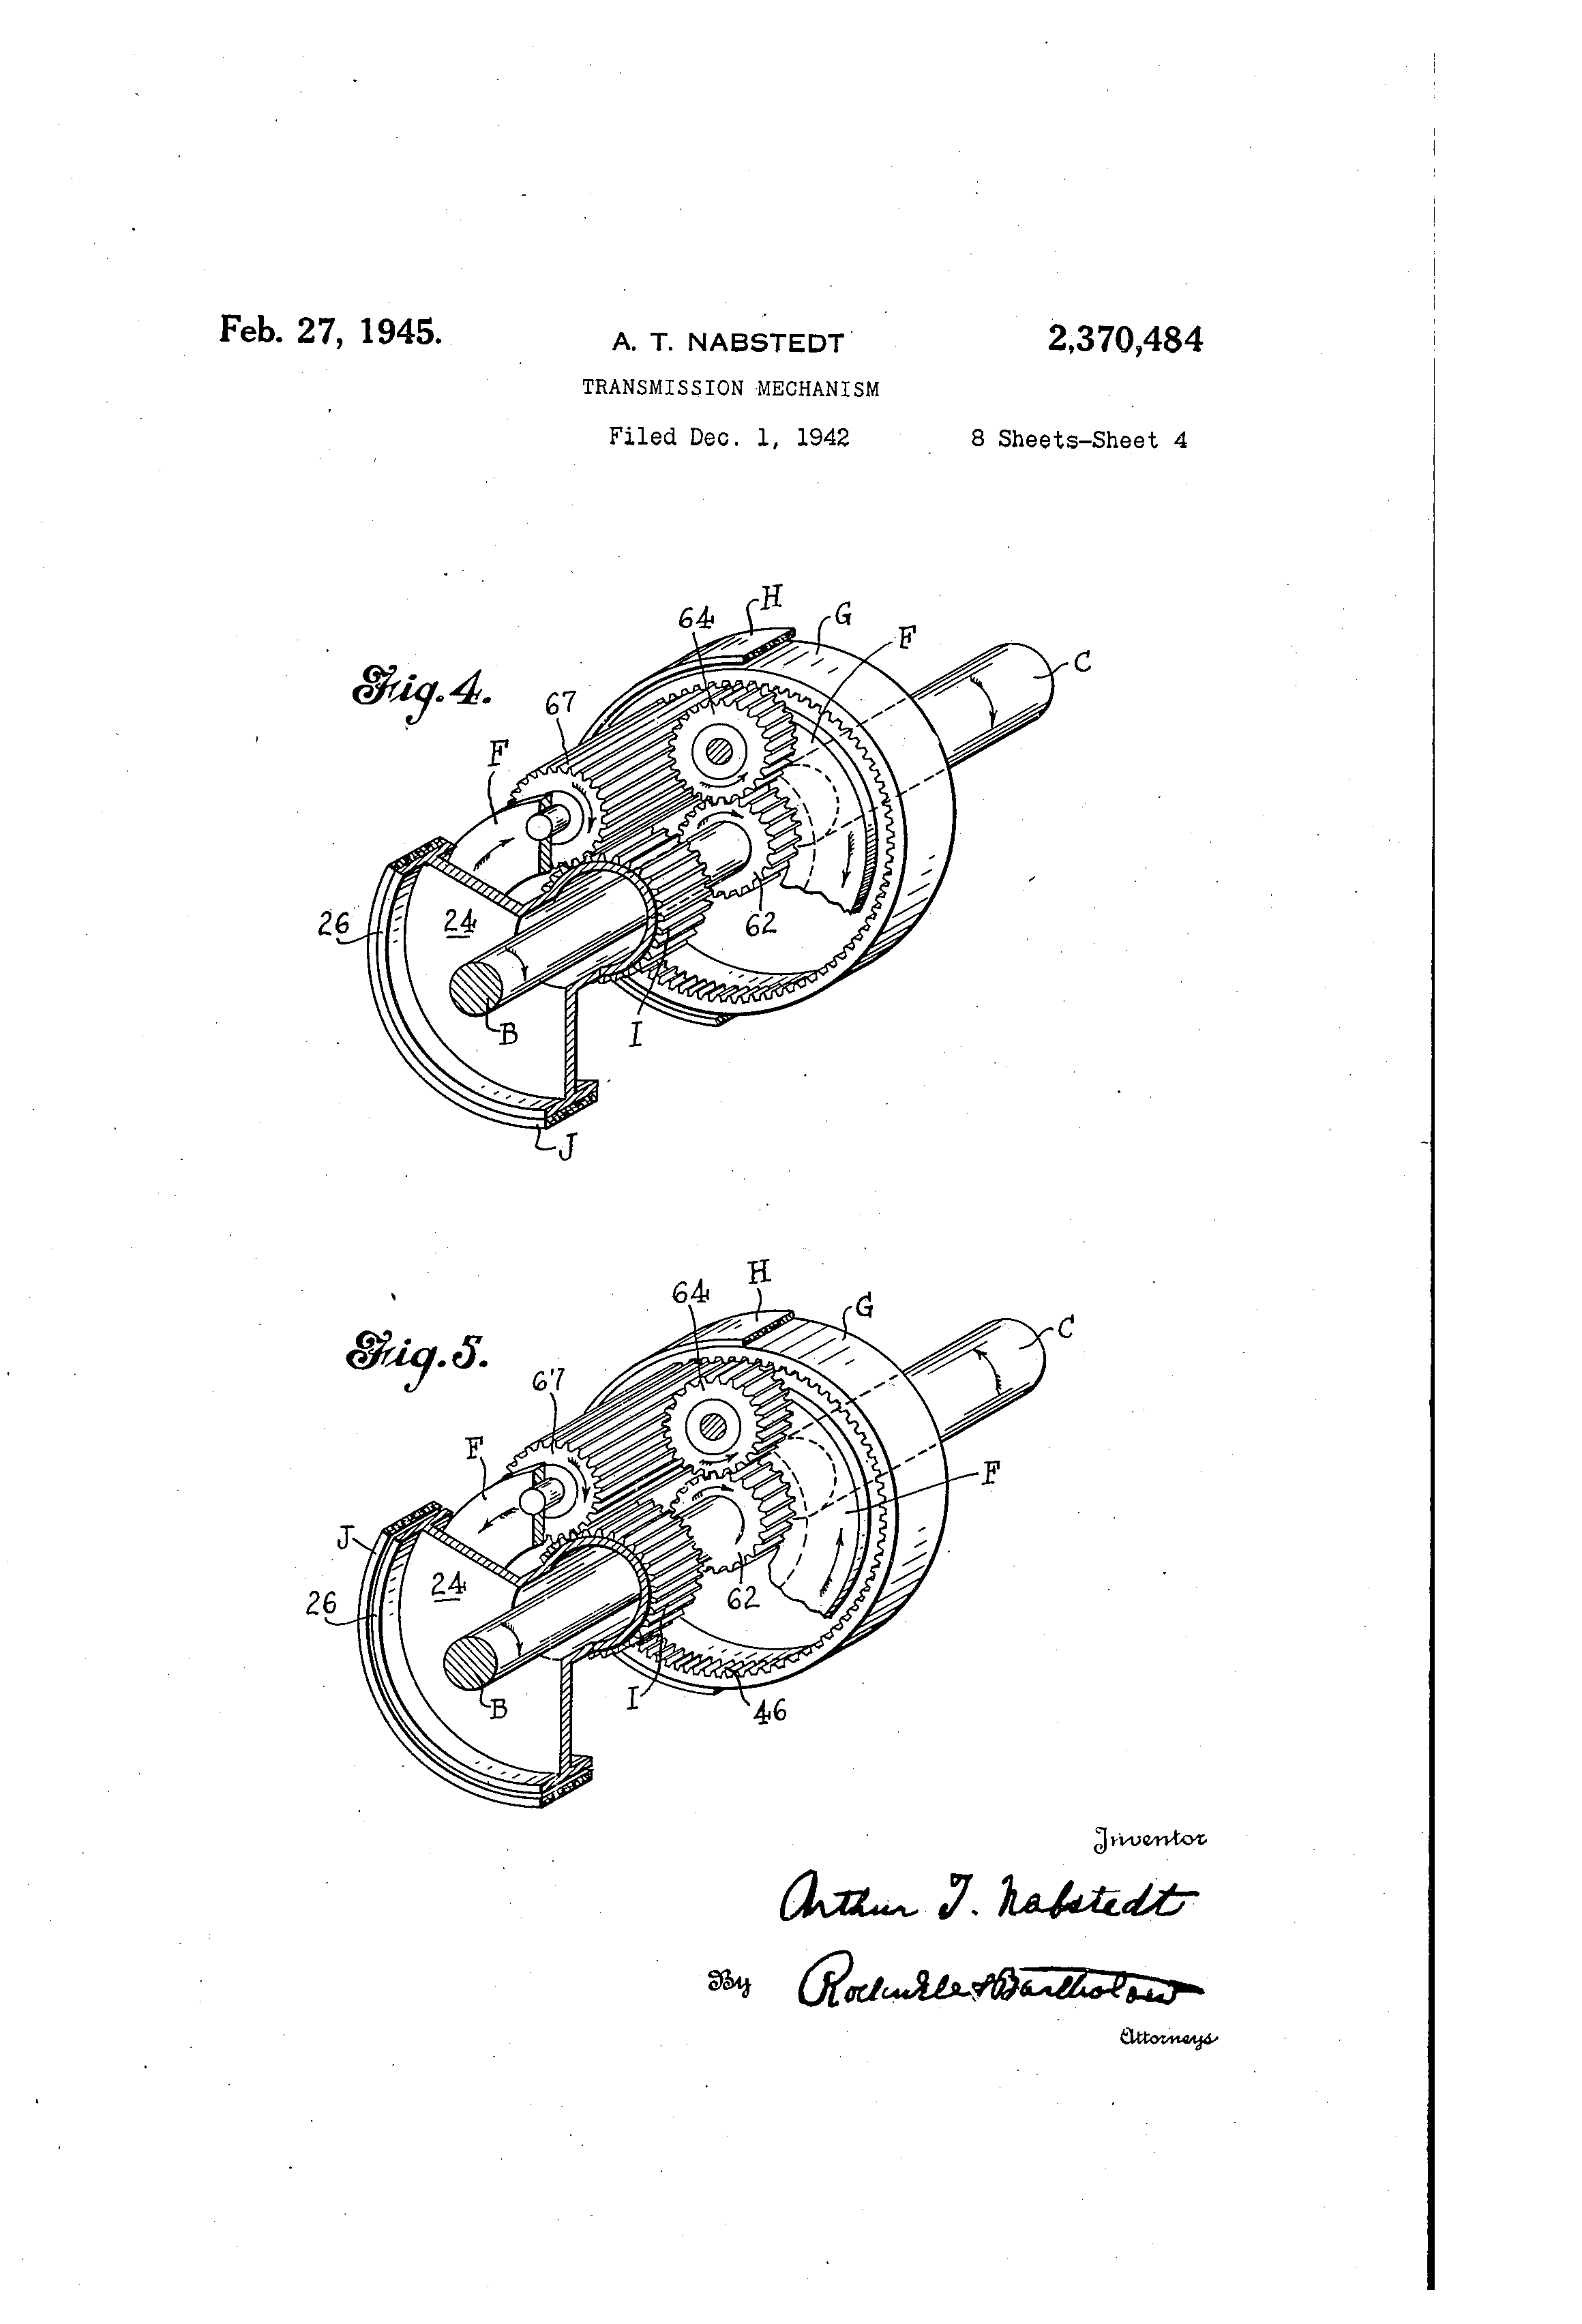 1945 J Johnson Outboard Motor Wiring Diagram Schematics Pump Patent Us2370484 Transmission Mechanism Google Patents